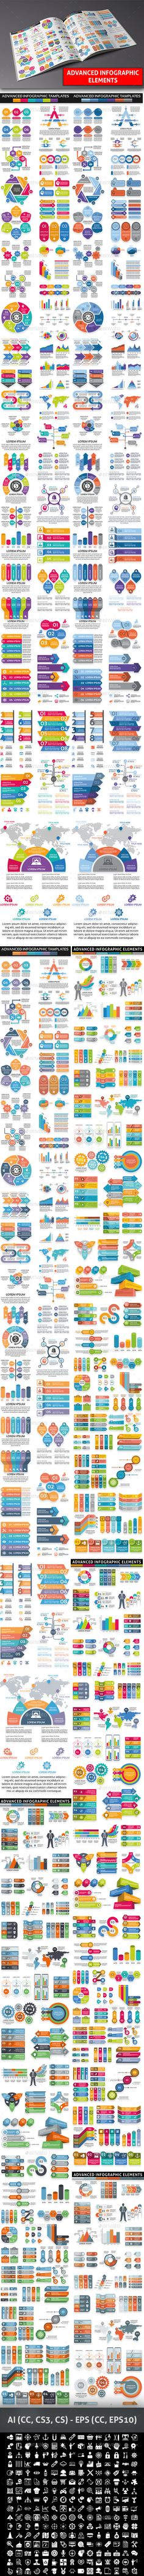 Bundle Advanced Infographic Elements Template AI Illustrator #design